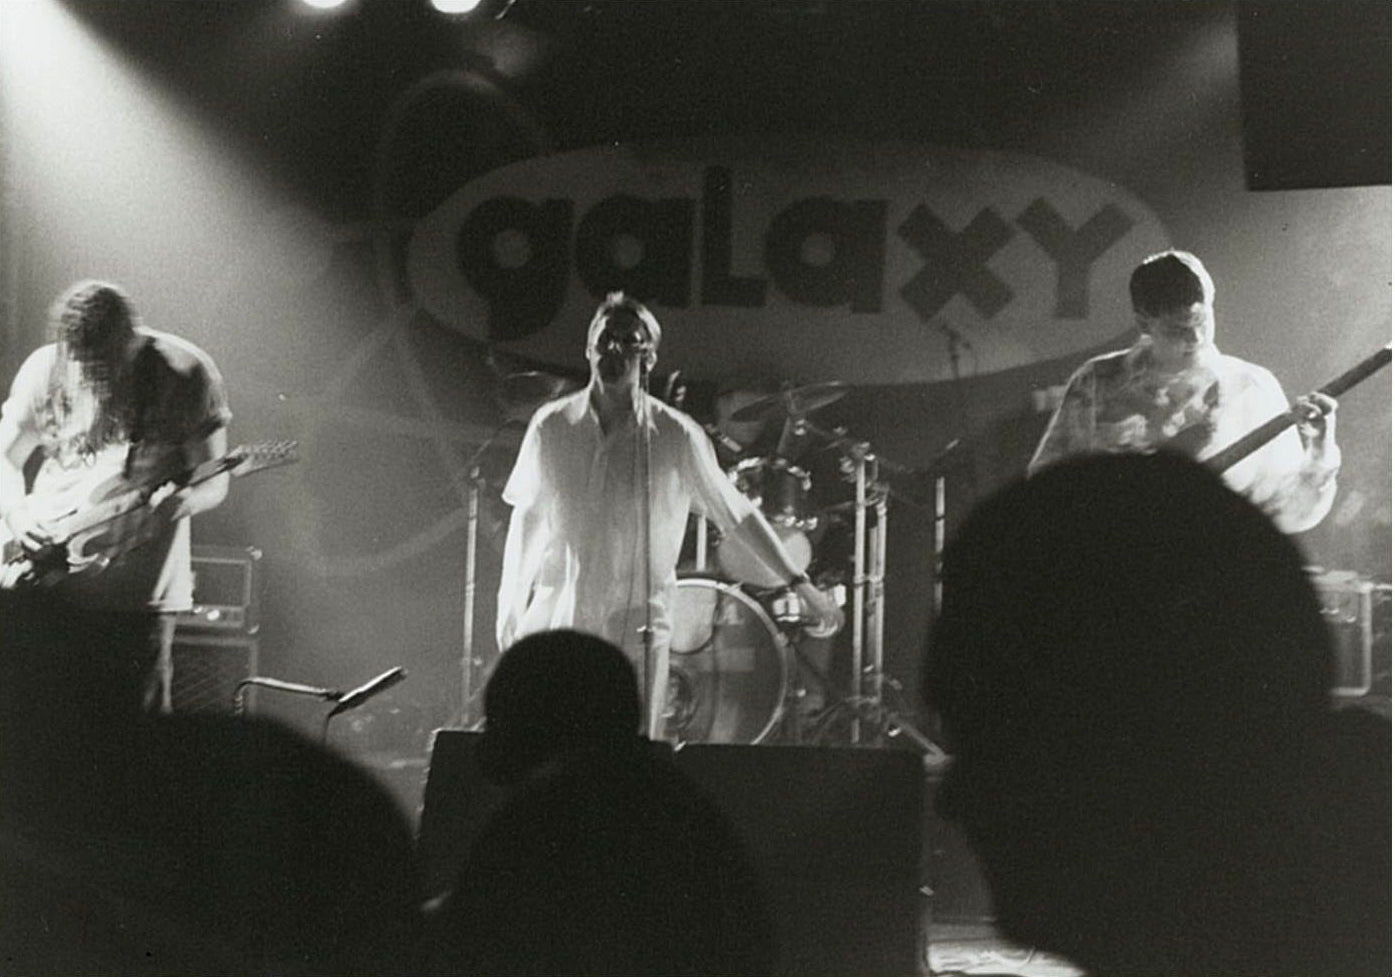 My Little Island band live at the Galaxy club in St. Louis 1997.